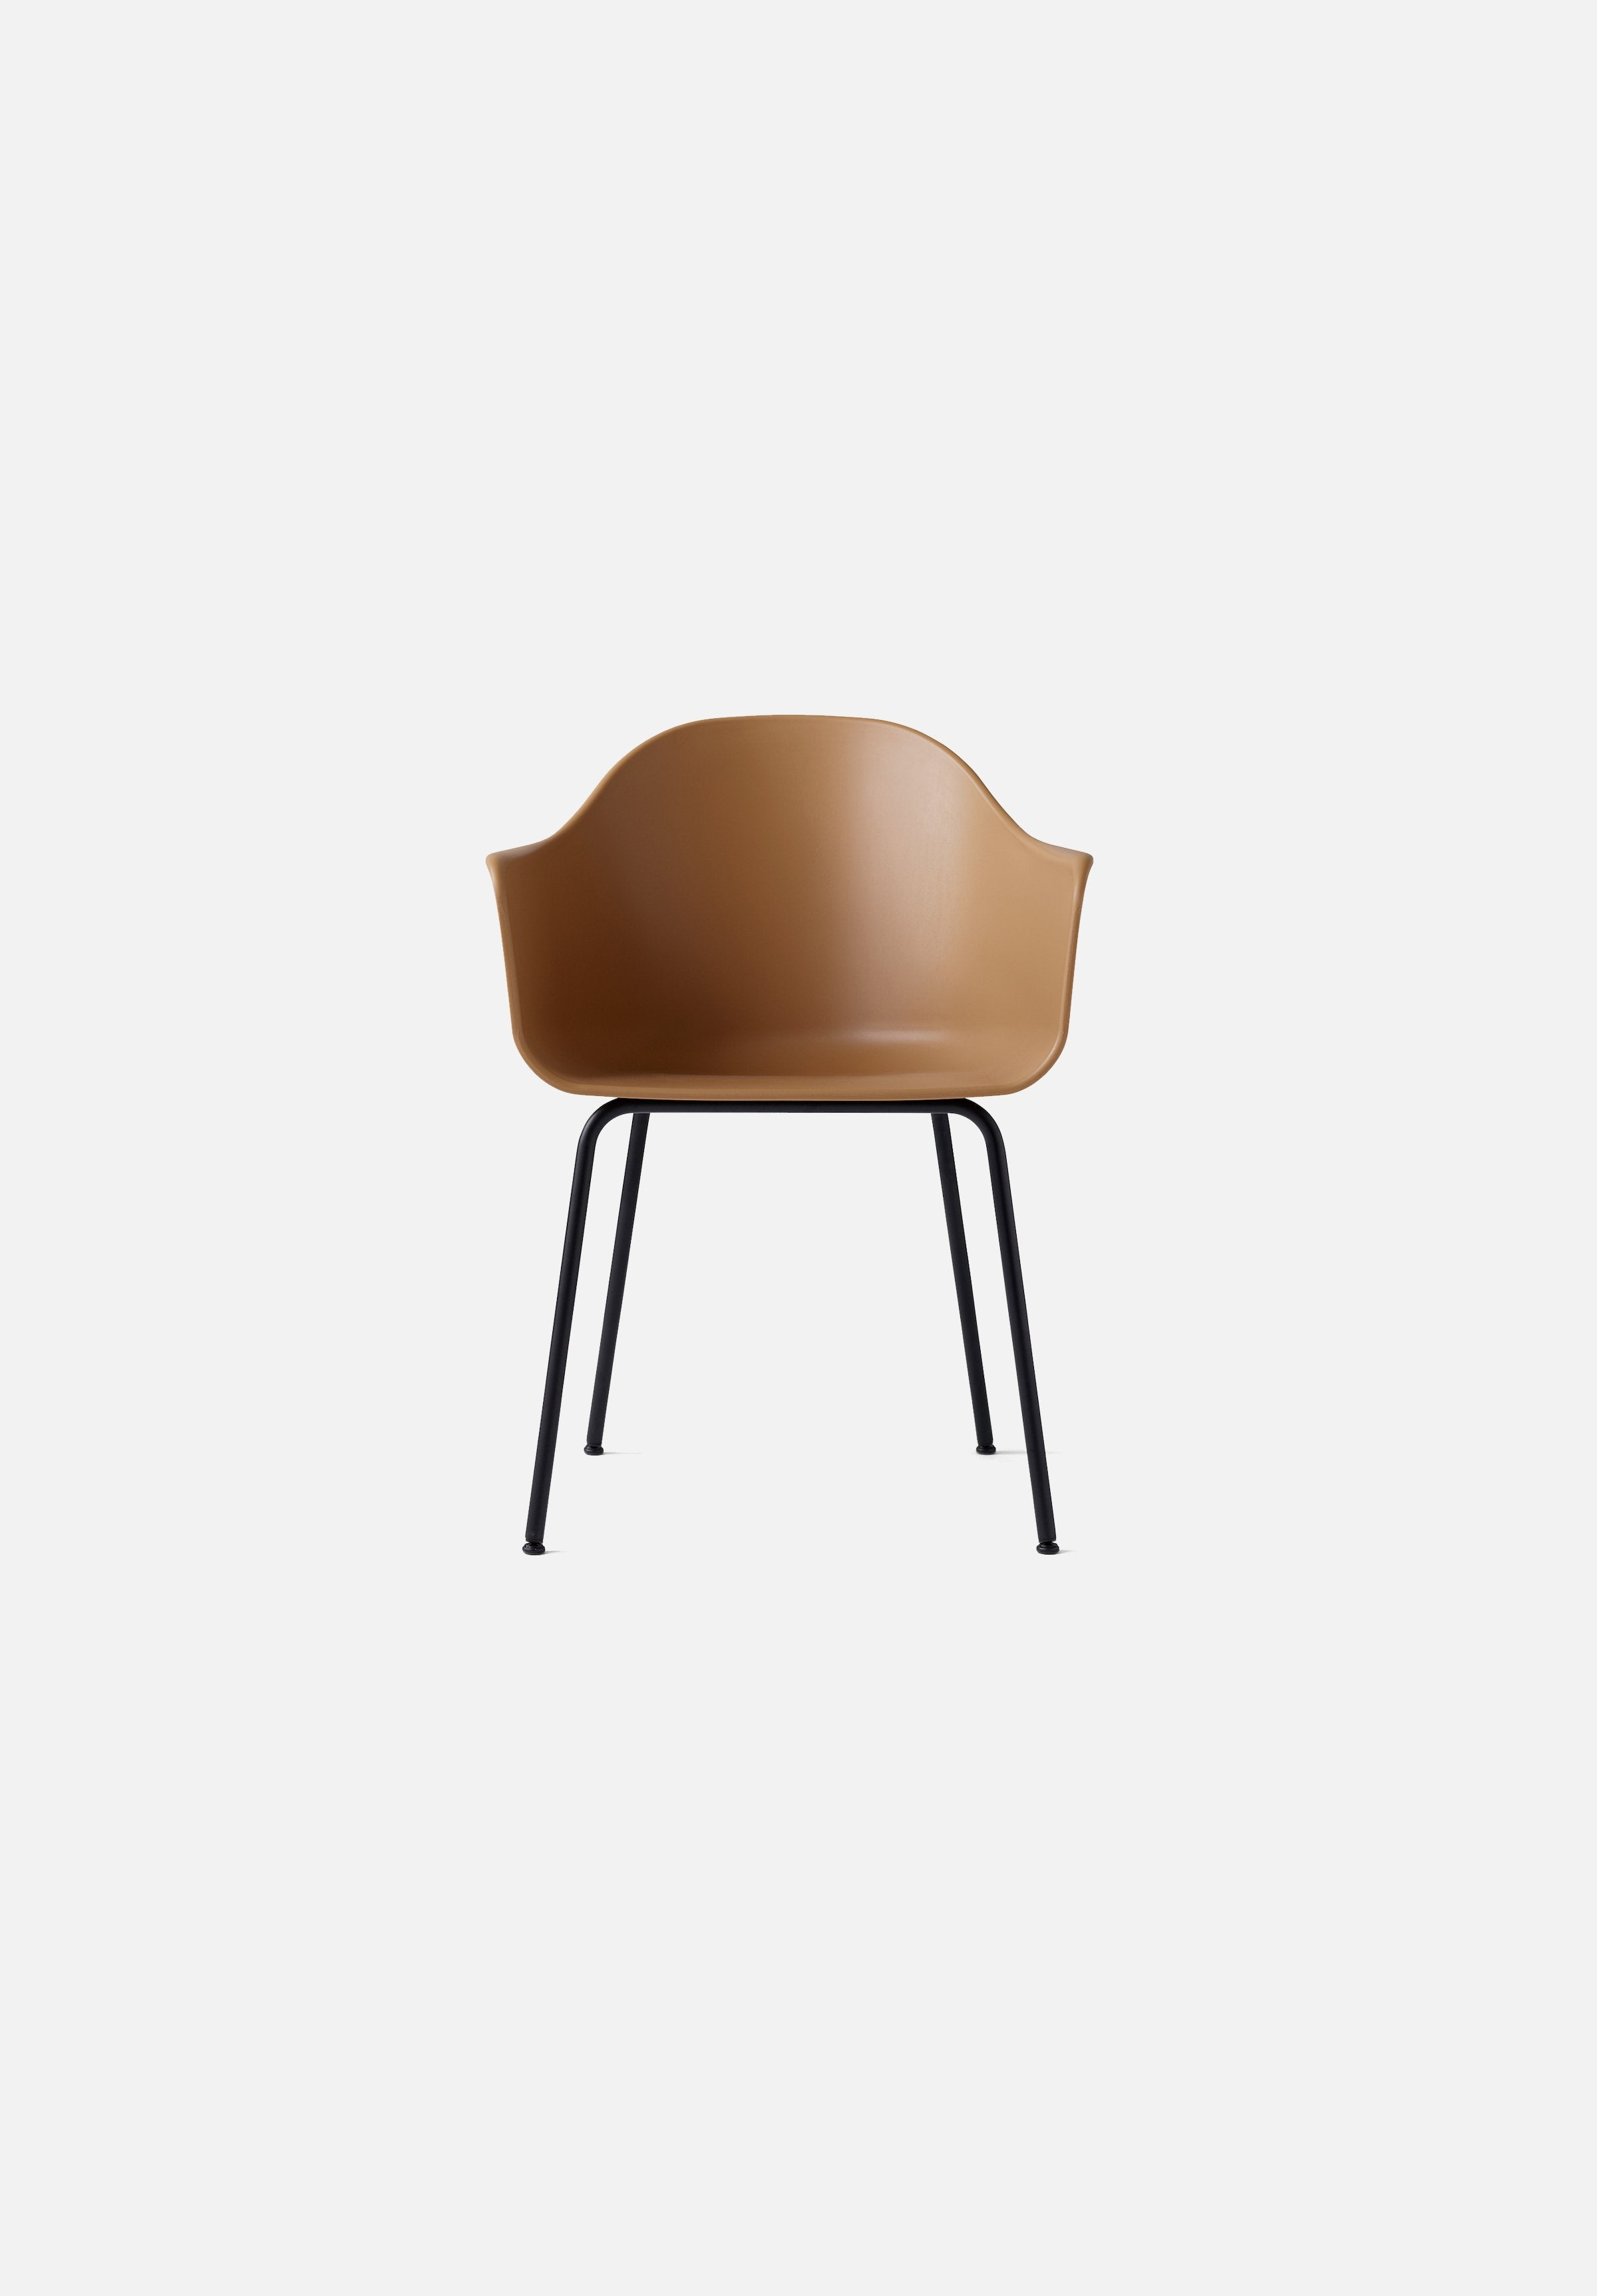 Harbour Chair - Steel Base-Norm Architects-Menu-khaki-Black Steel-danish-interior-furniture-denmark-Average-design-toronto-canada